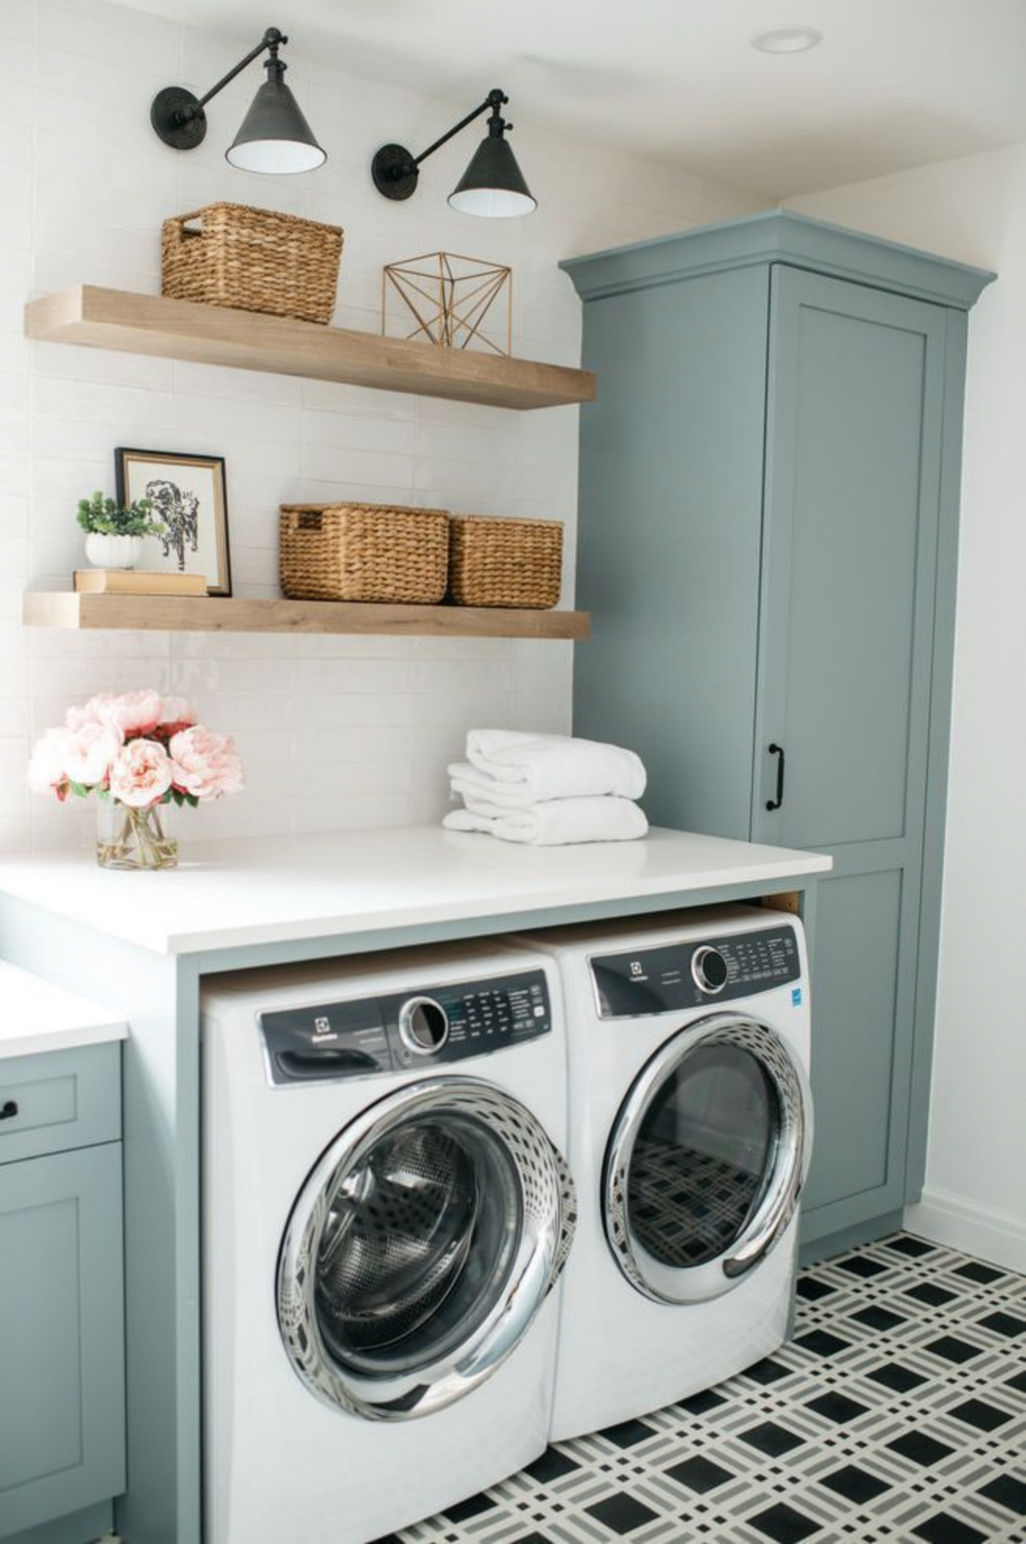 Trendy upstairs laundry rooms will or will not keep these interior design features 1